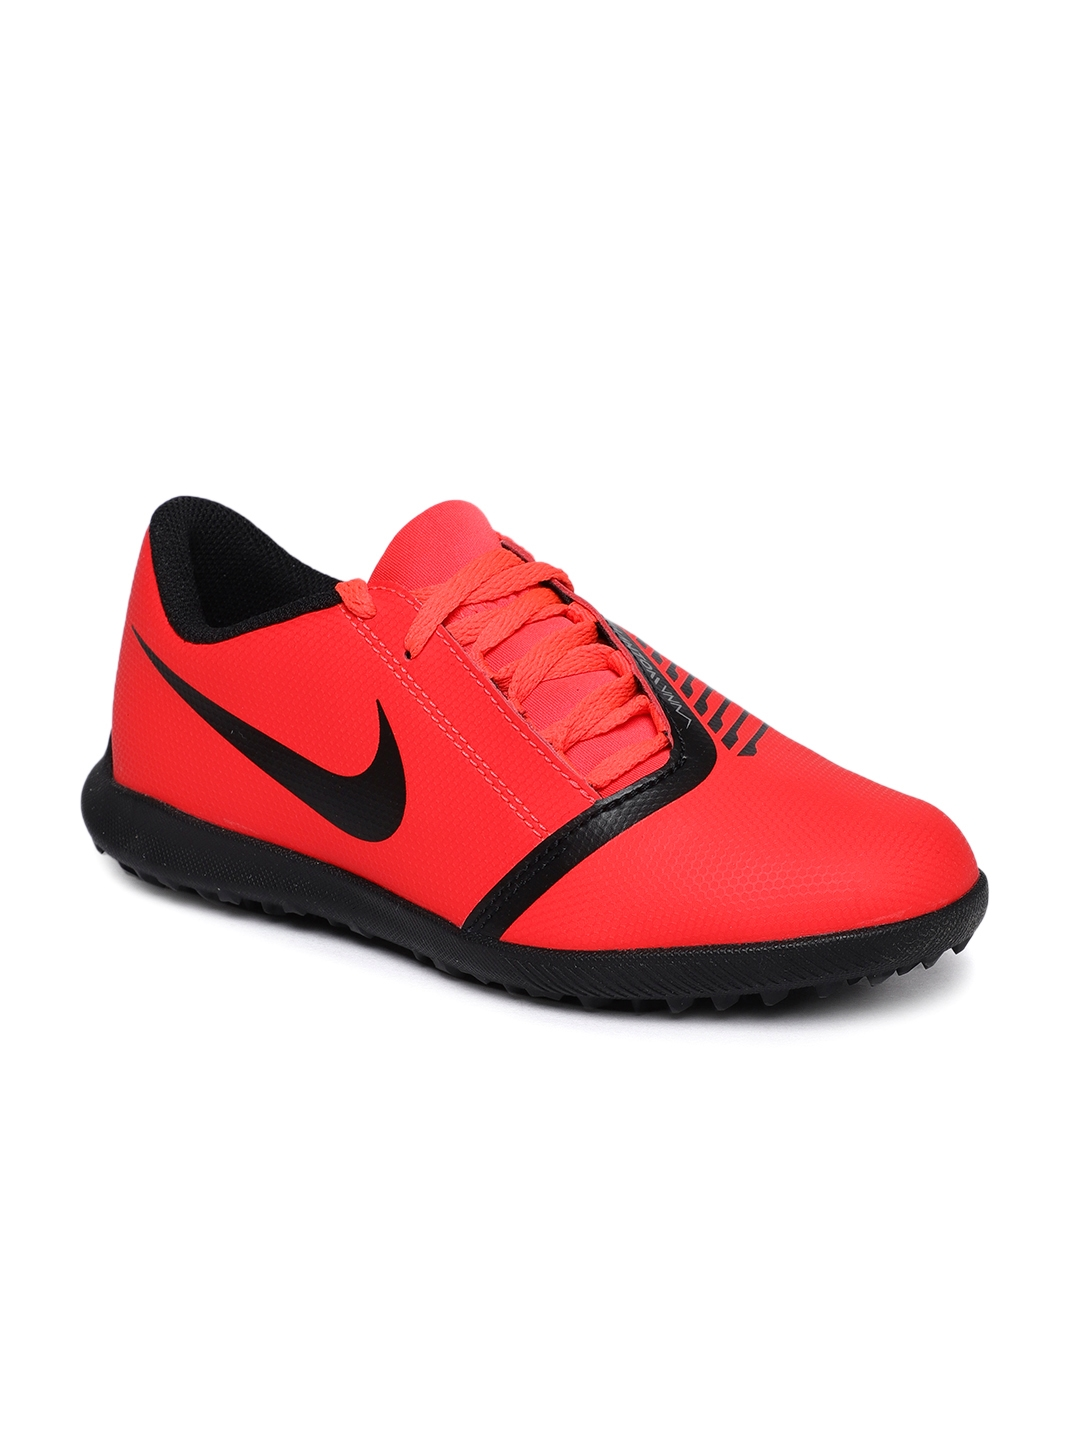 2b737c577f Buy Nike Unisex Red Phantom Venom Club TF Football Shoes - Sports ...